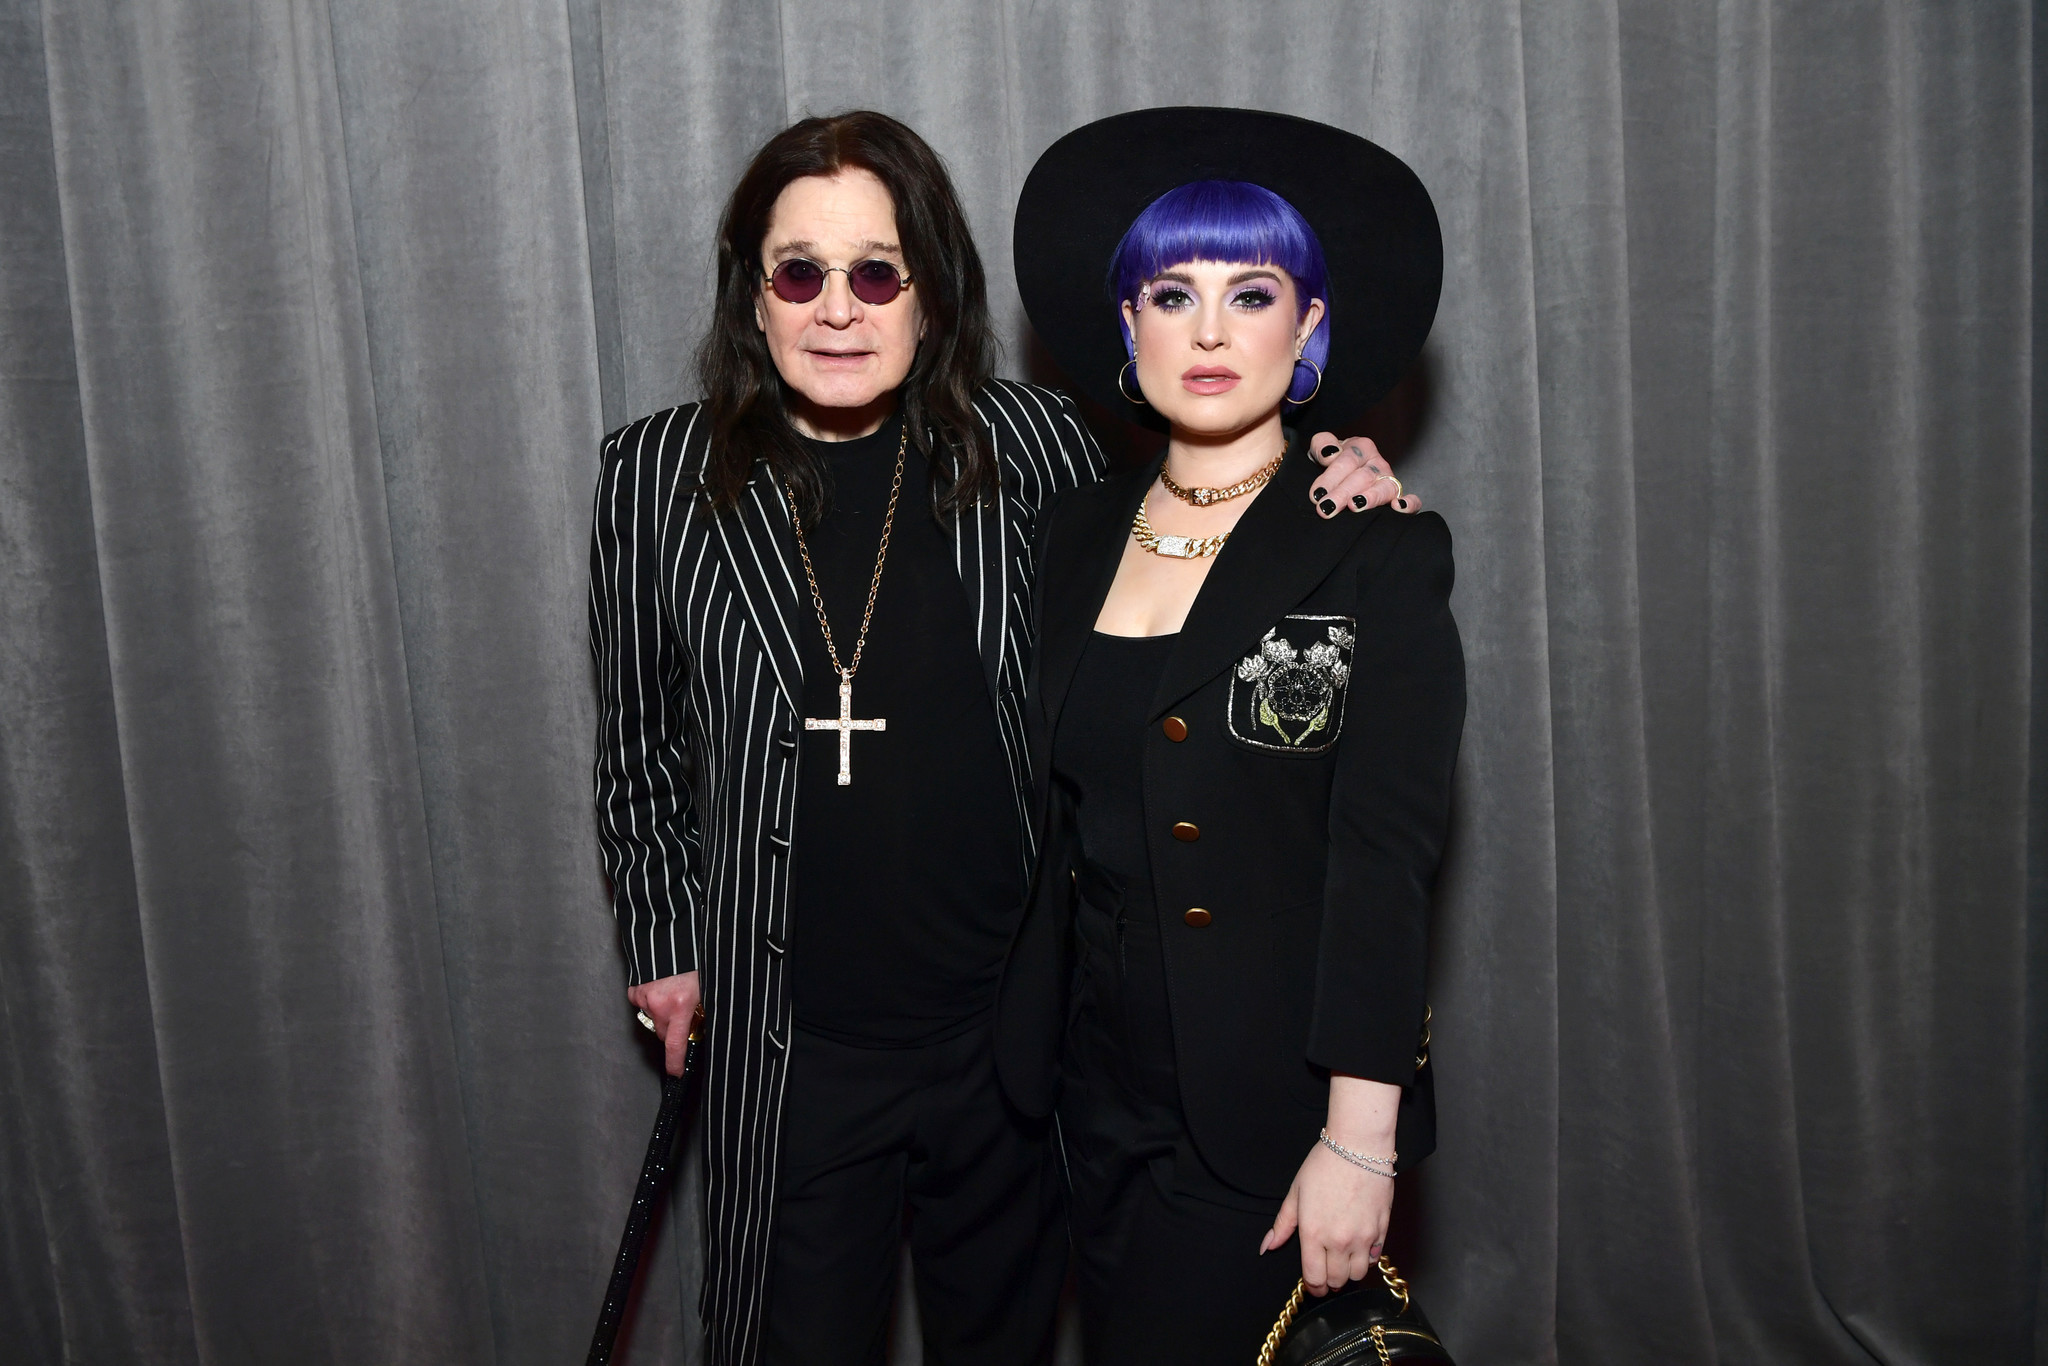 Ozzy Osbourne attends Grammys with cane days after revealing Parkinson's diagnosis